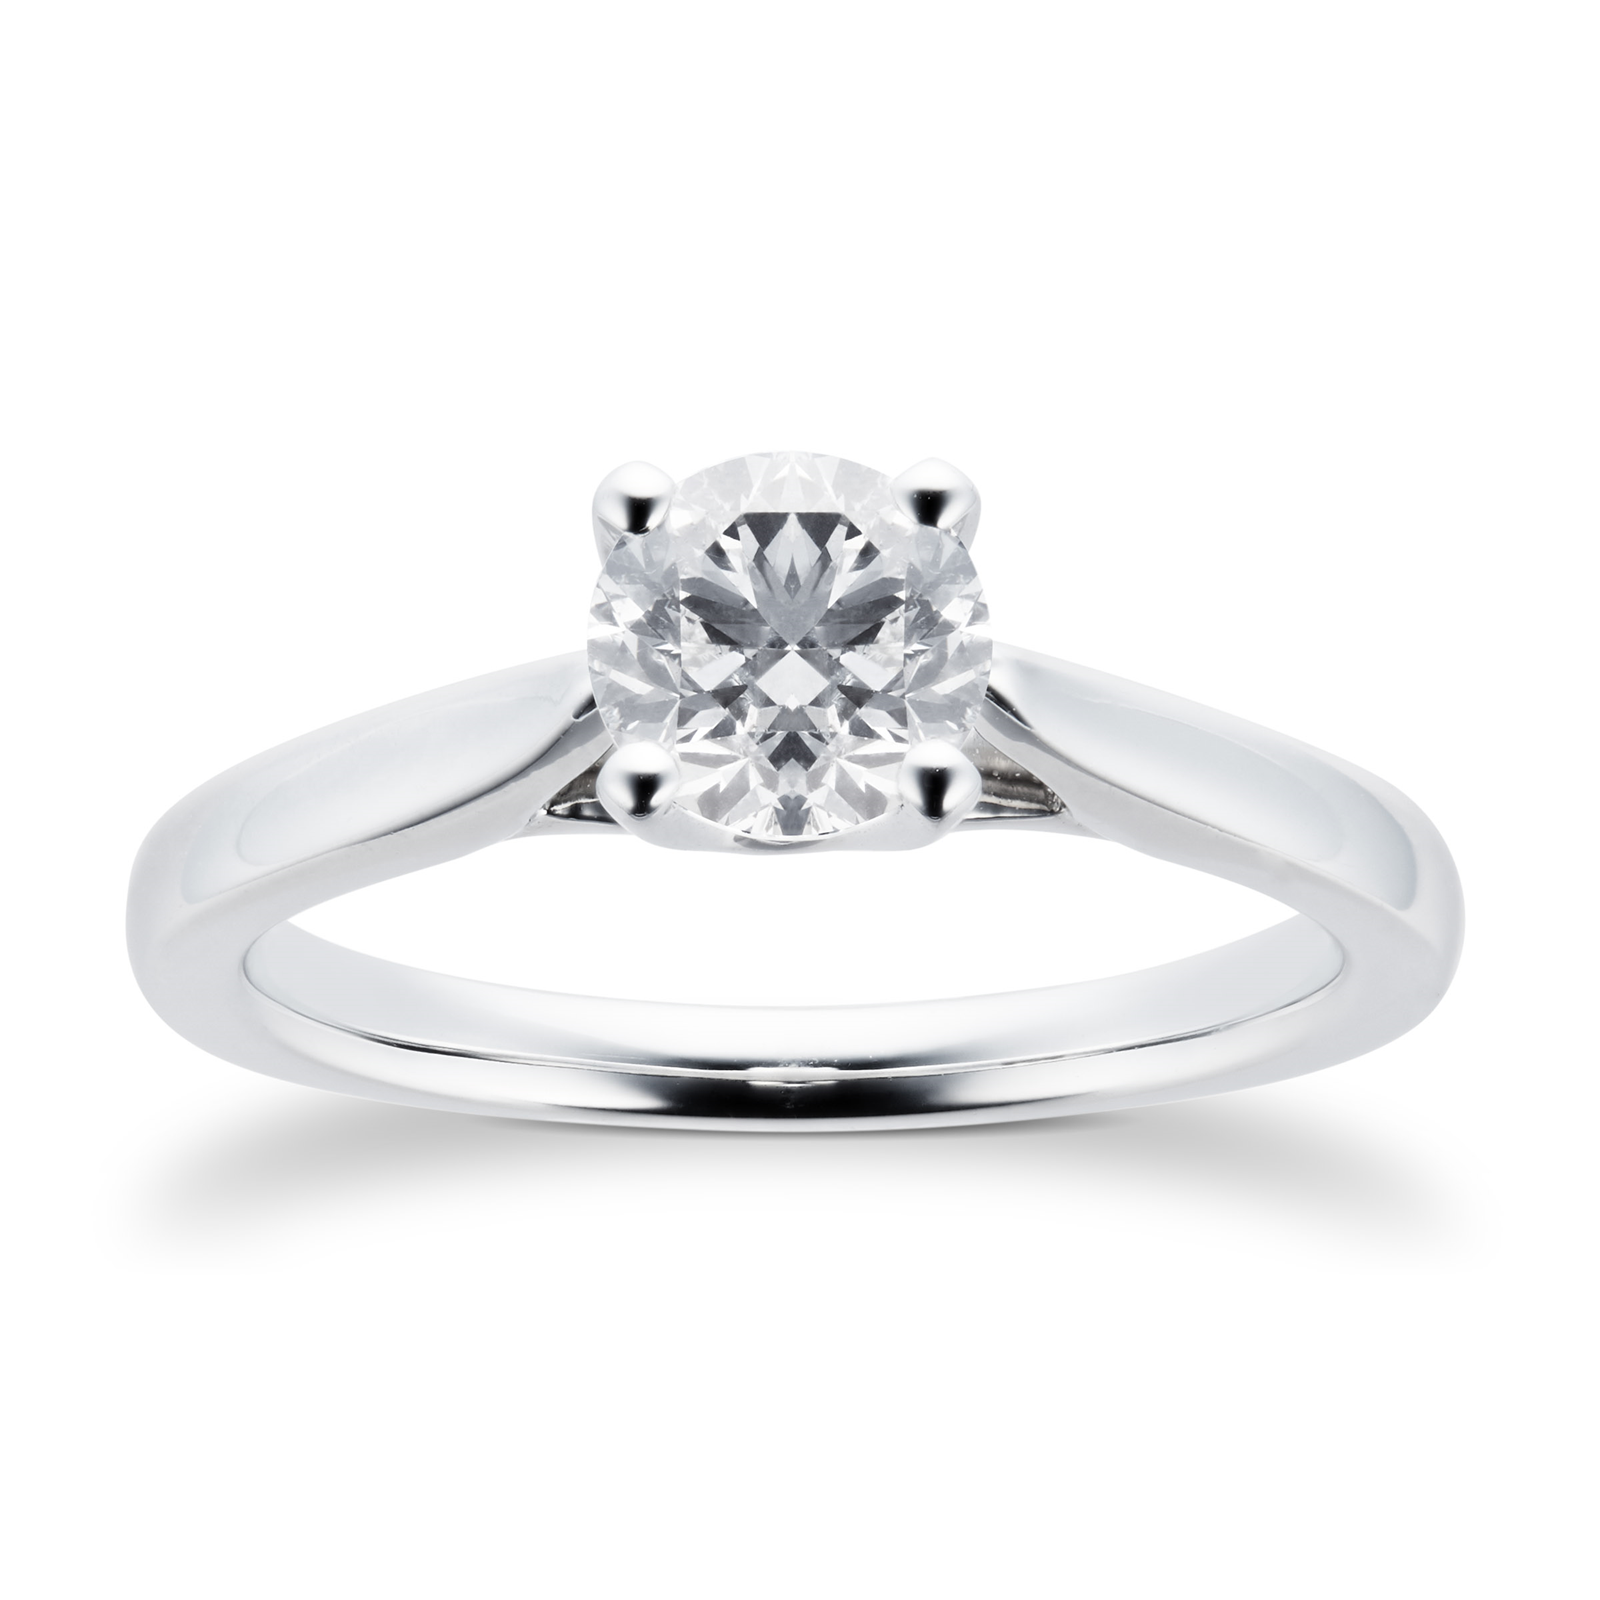 Platinum Brilliant Cut 0.70 Carat 88 Facet Diamond Ring - Ring Size J